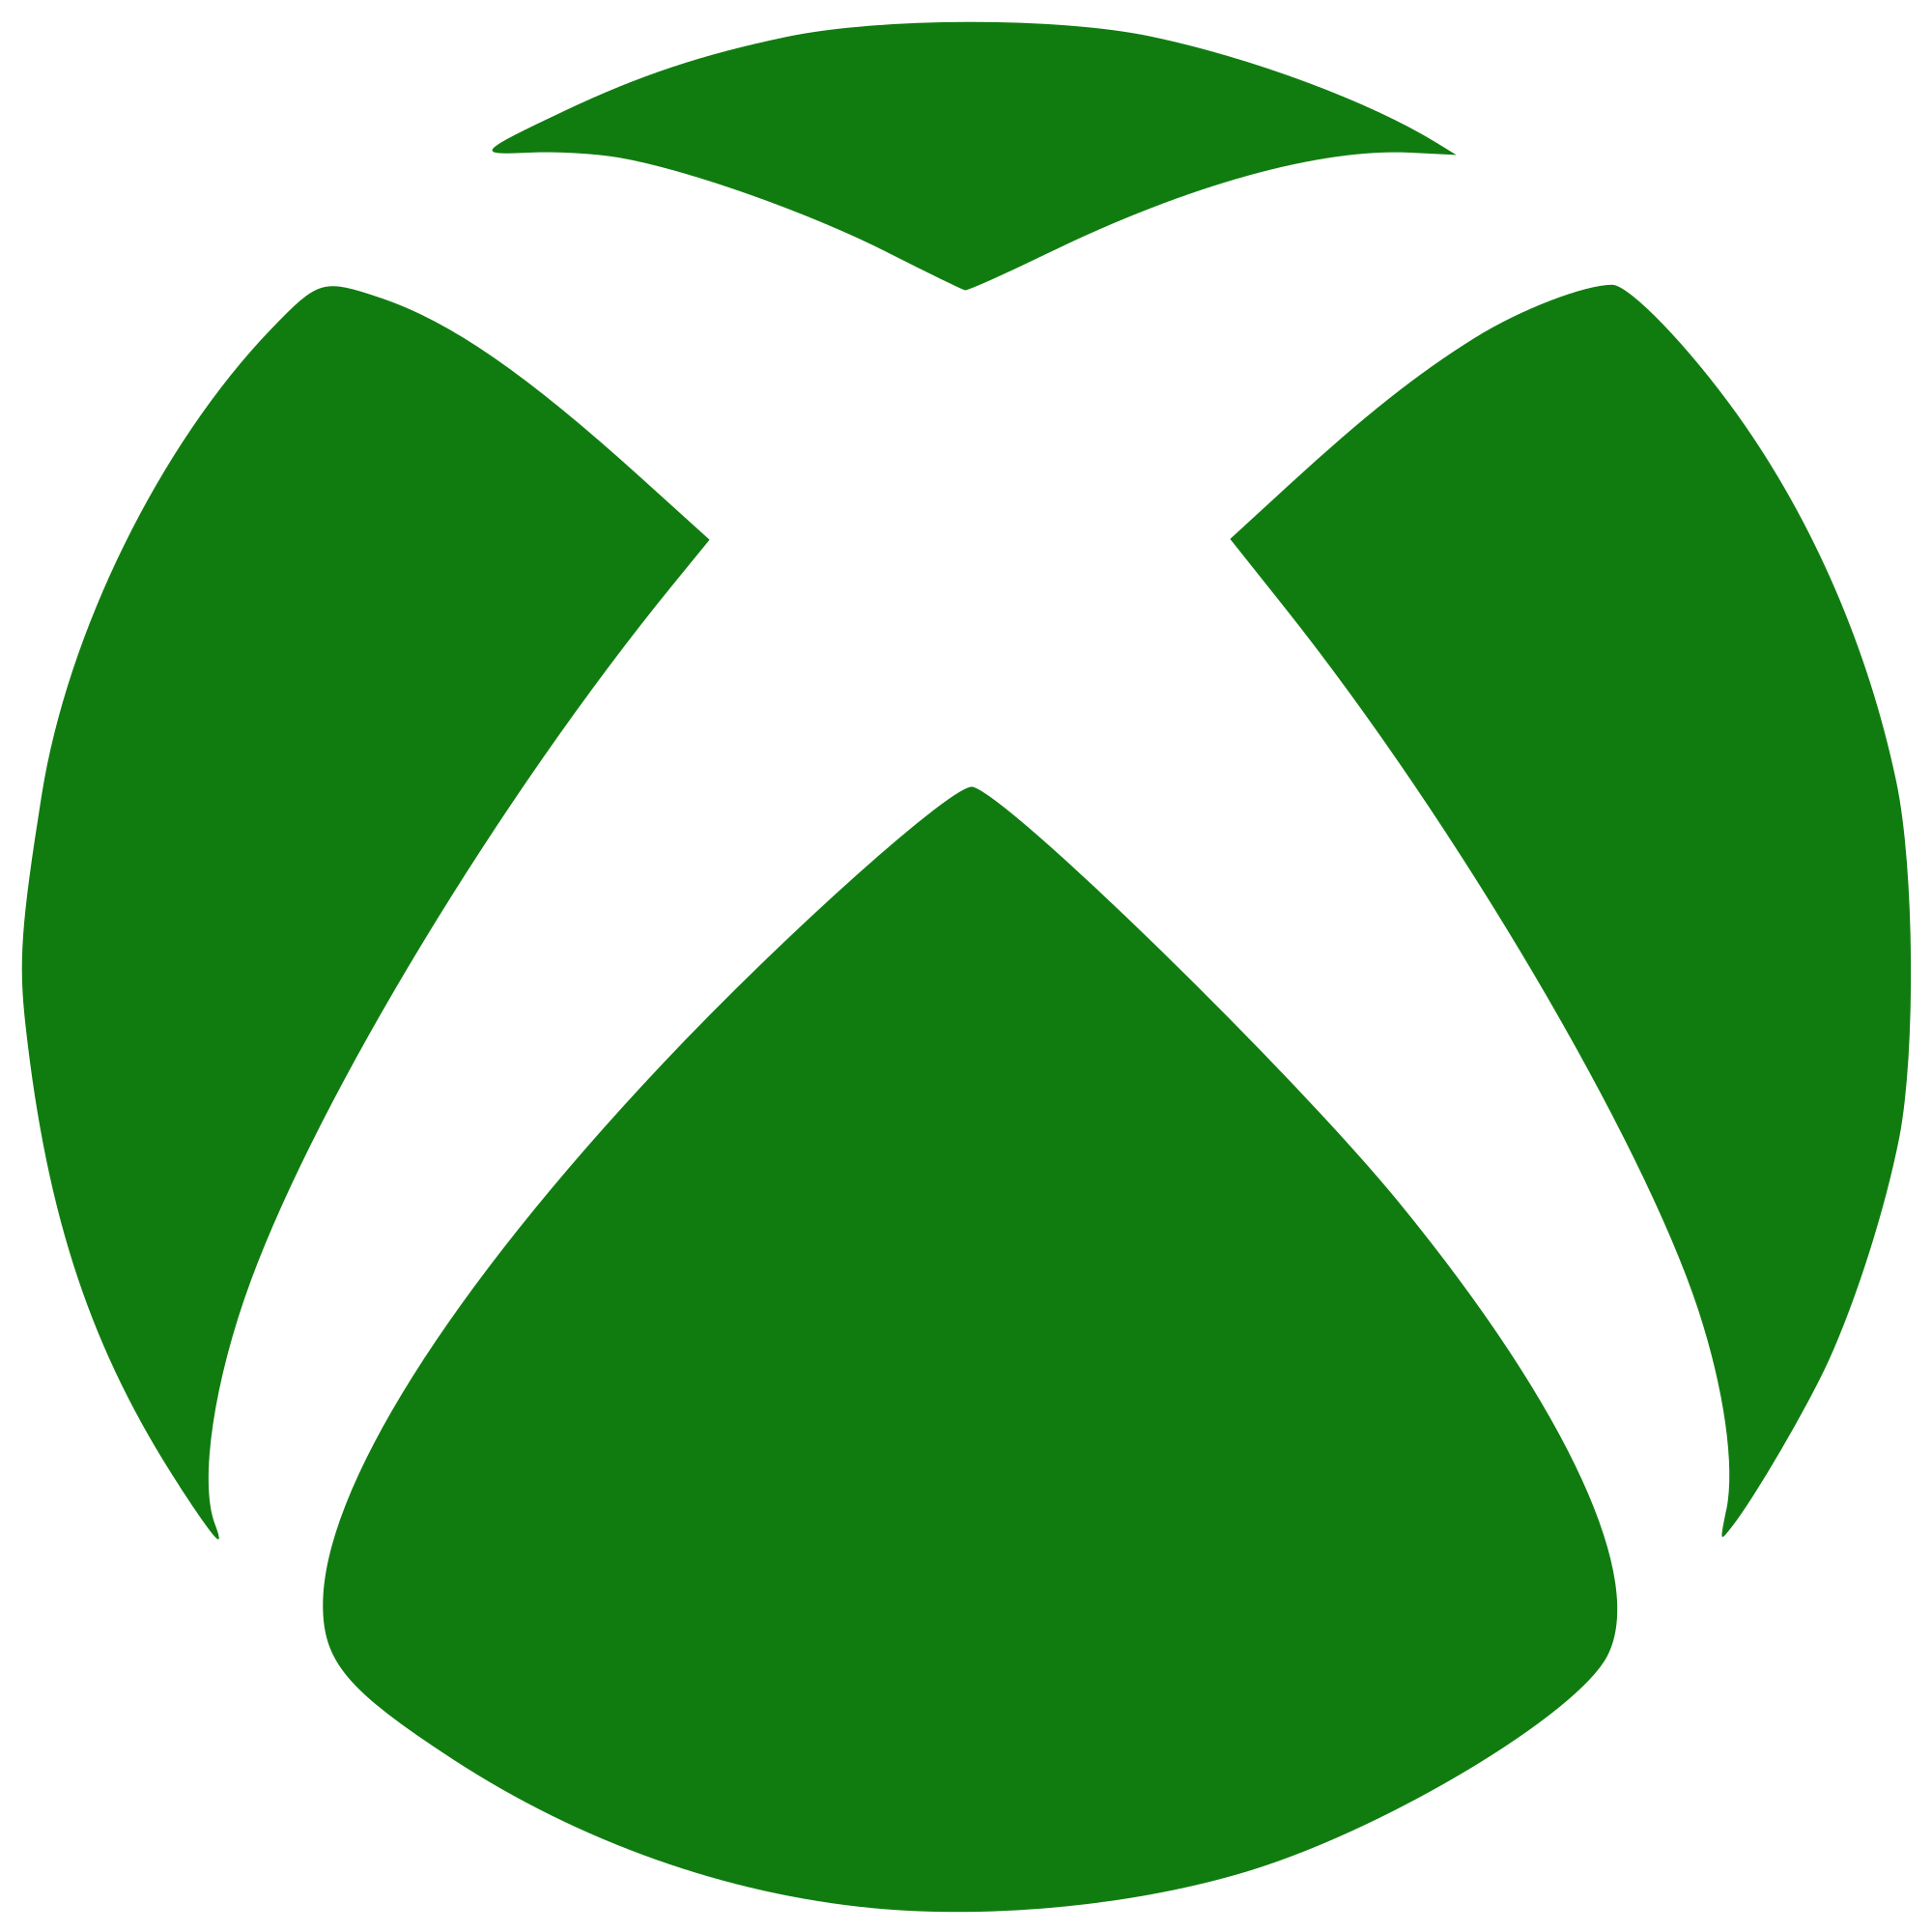 Gaming clipart xbox logo. Pin by karen ammann